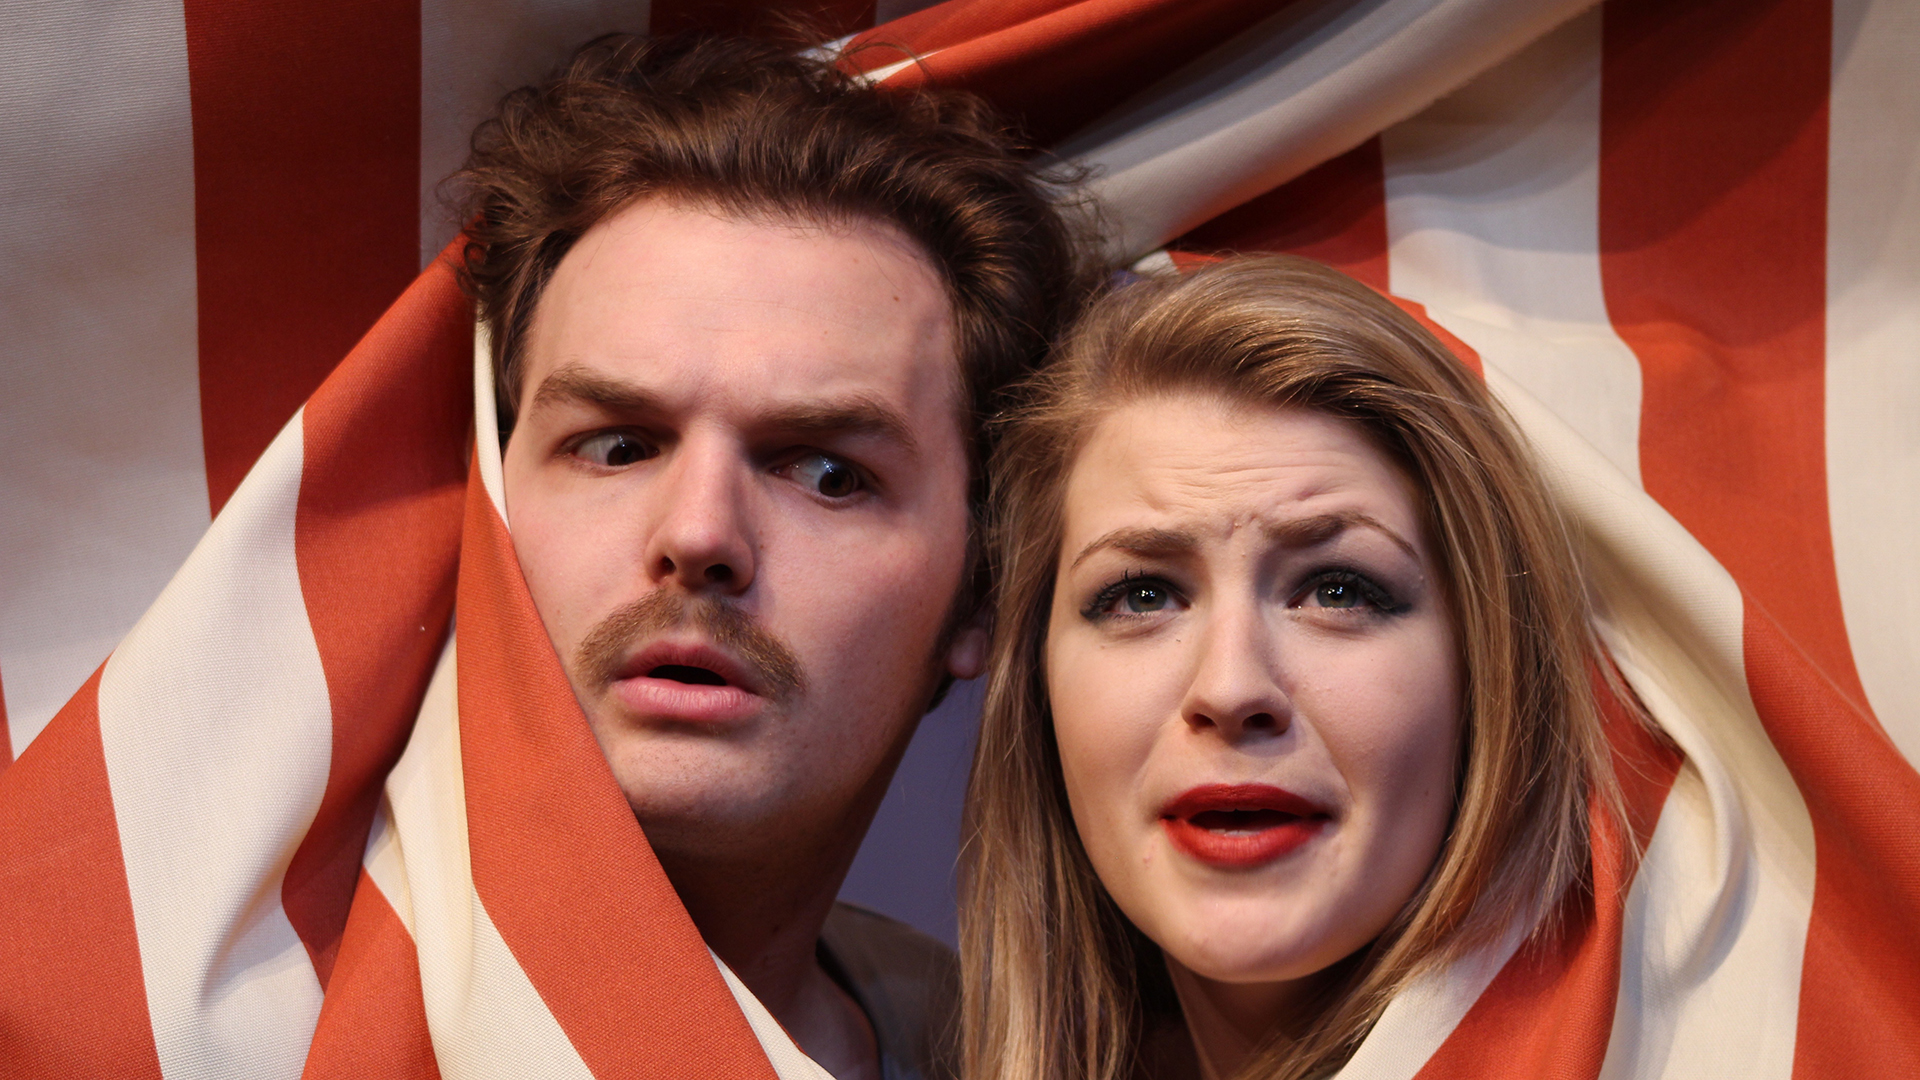 See how WT will stage two British comedies simultaneously on adjoining stages